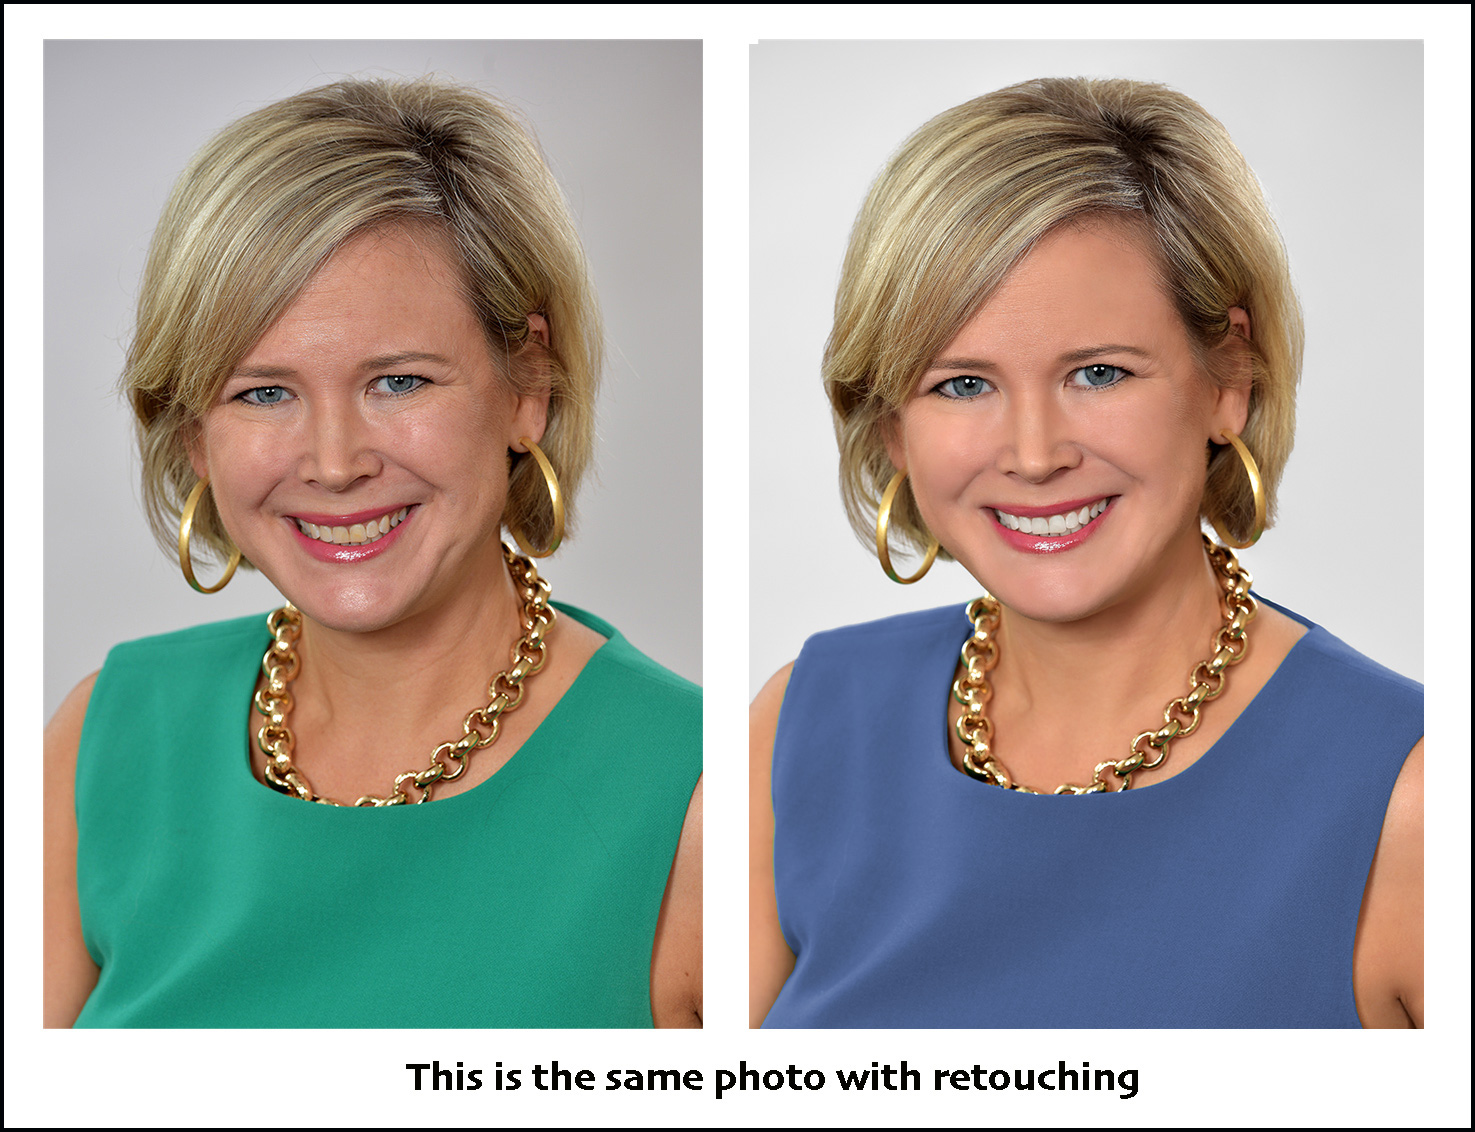 business woman photo retouching makeover